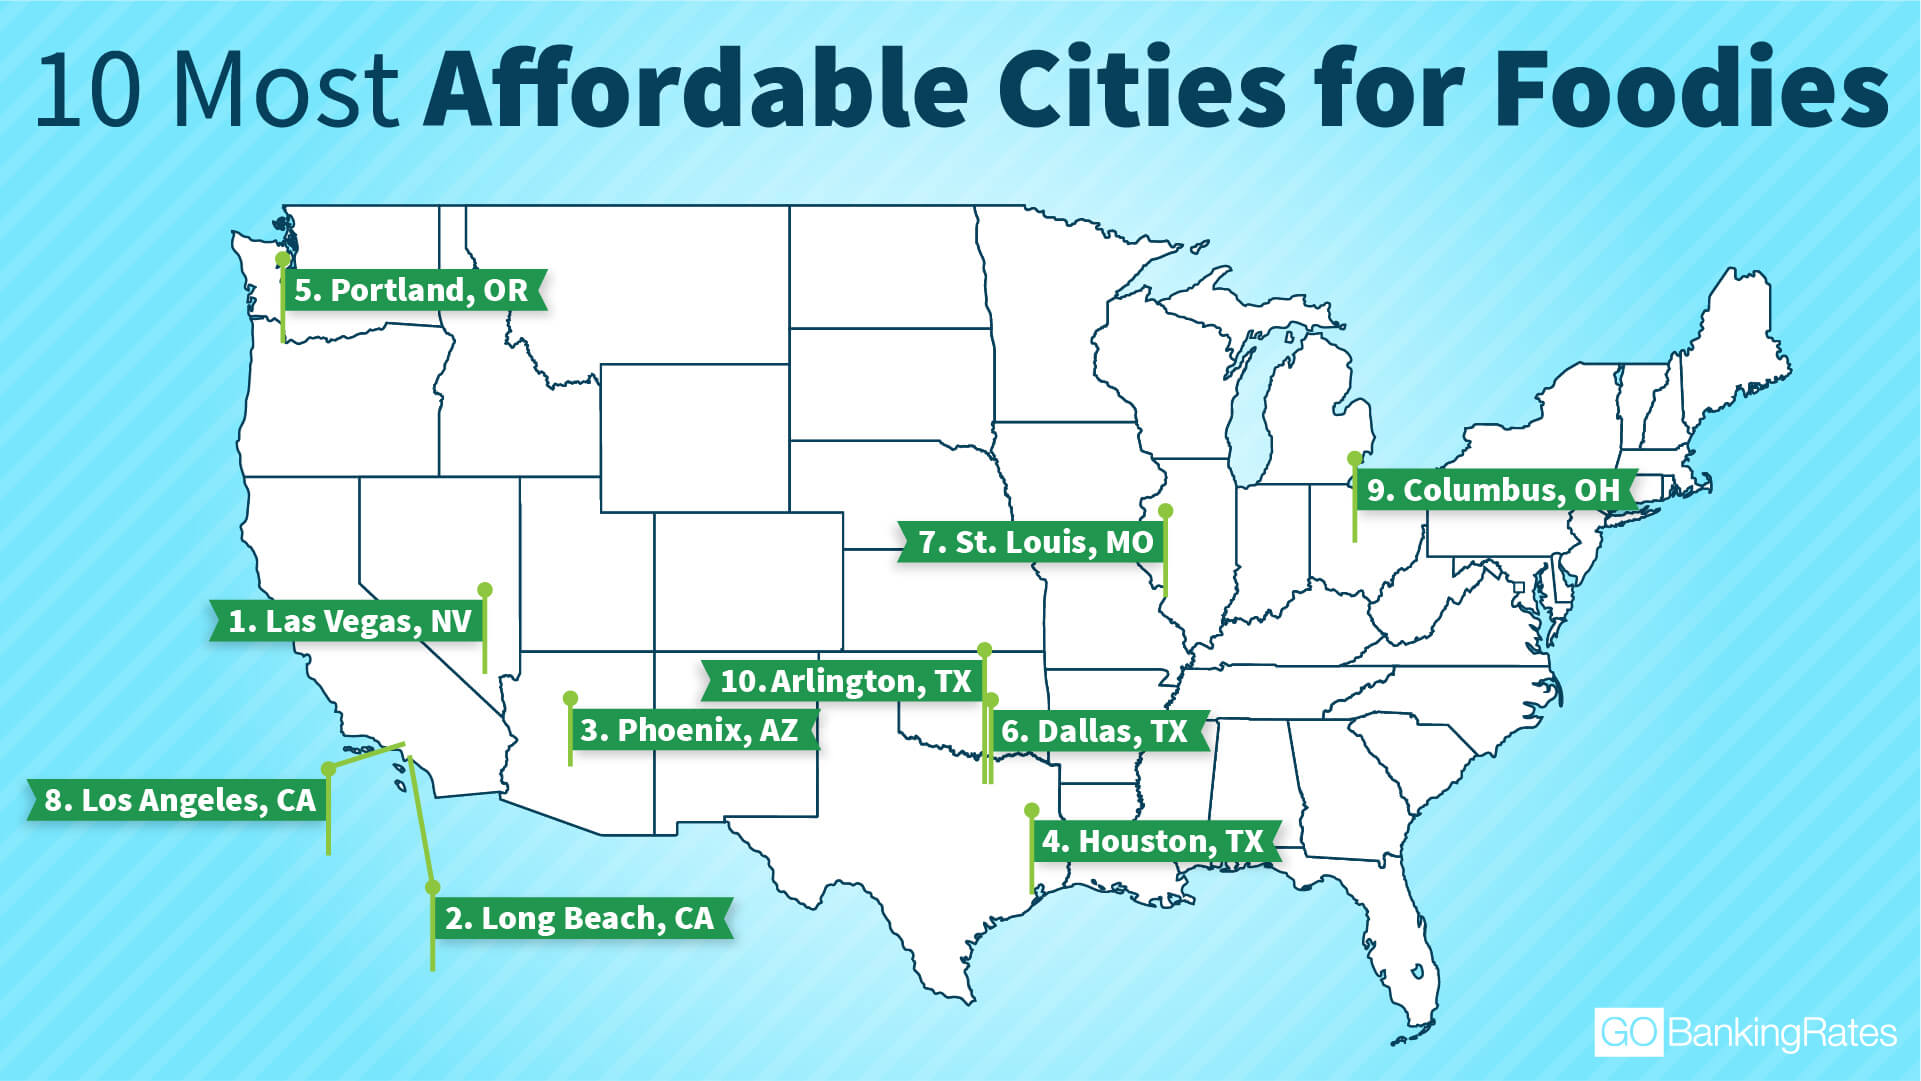 Most Affordable Cities for Foodies map